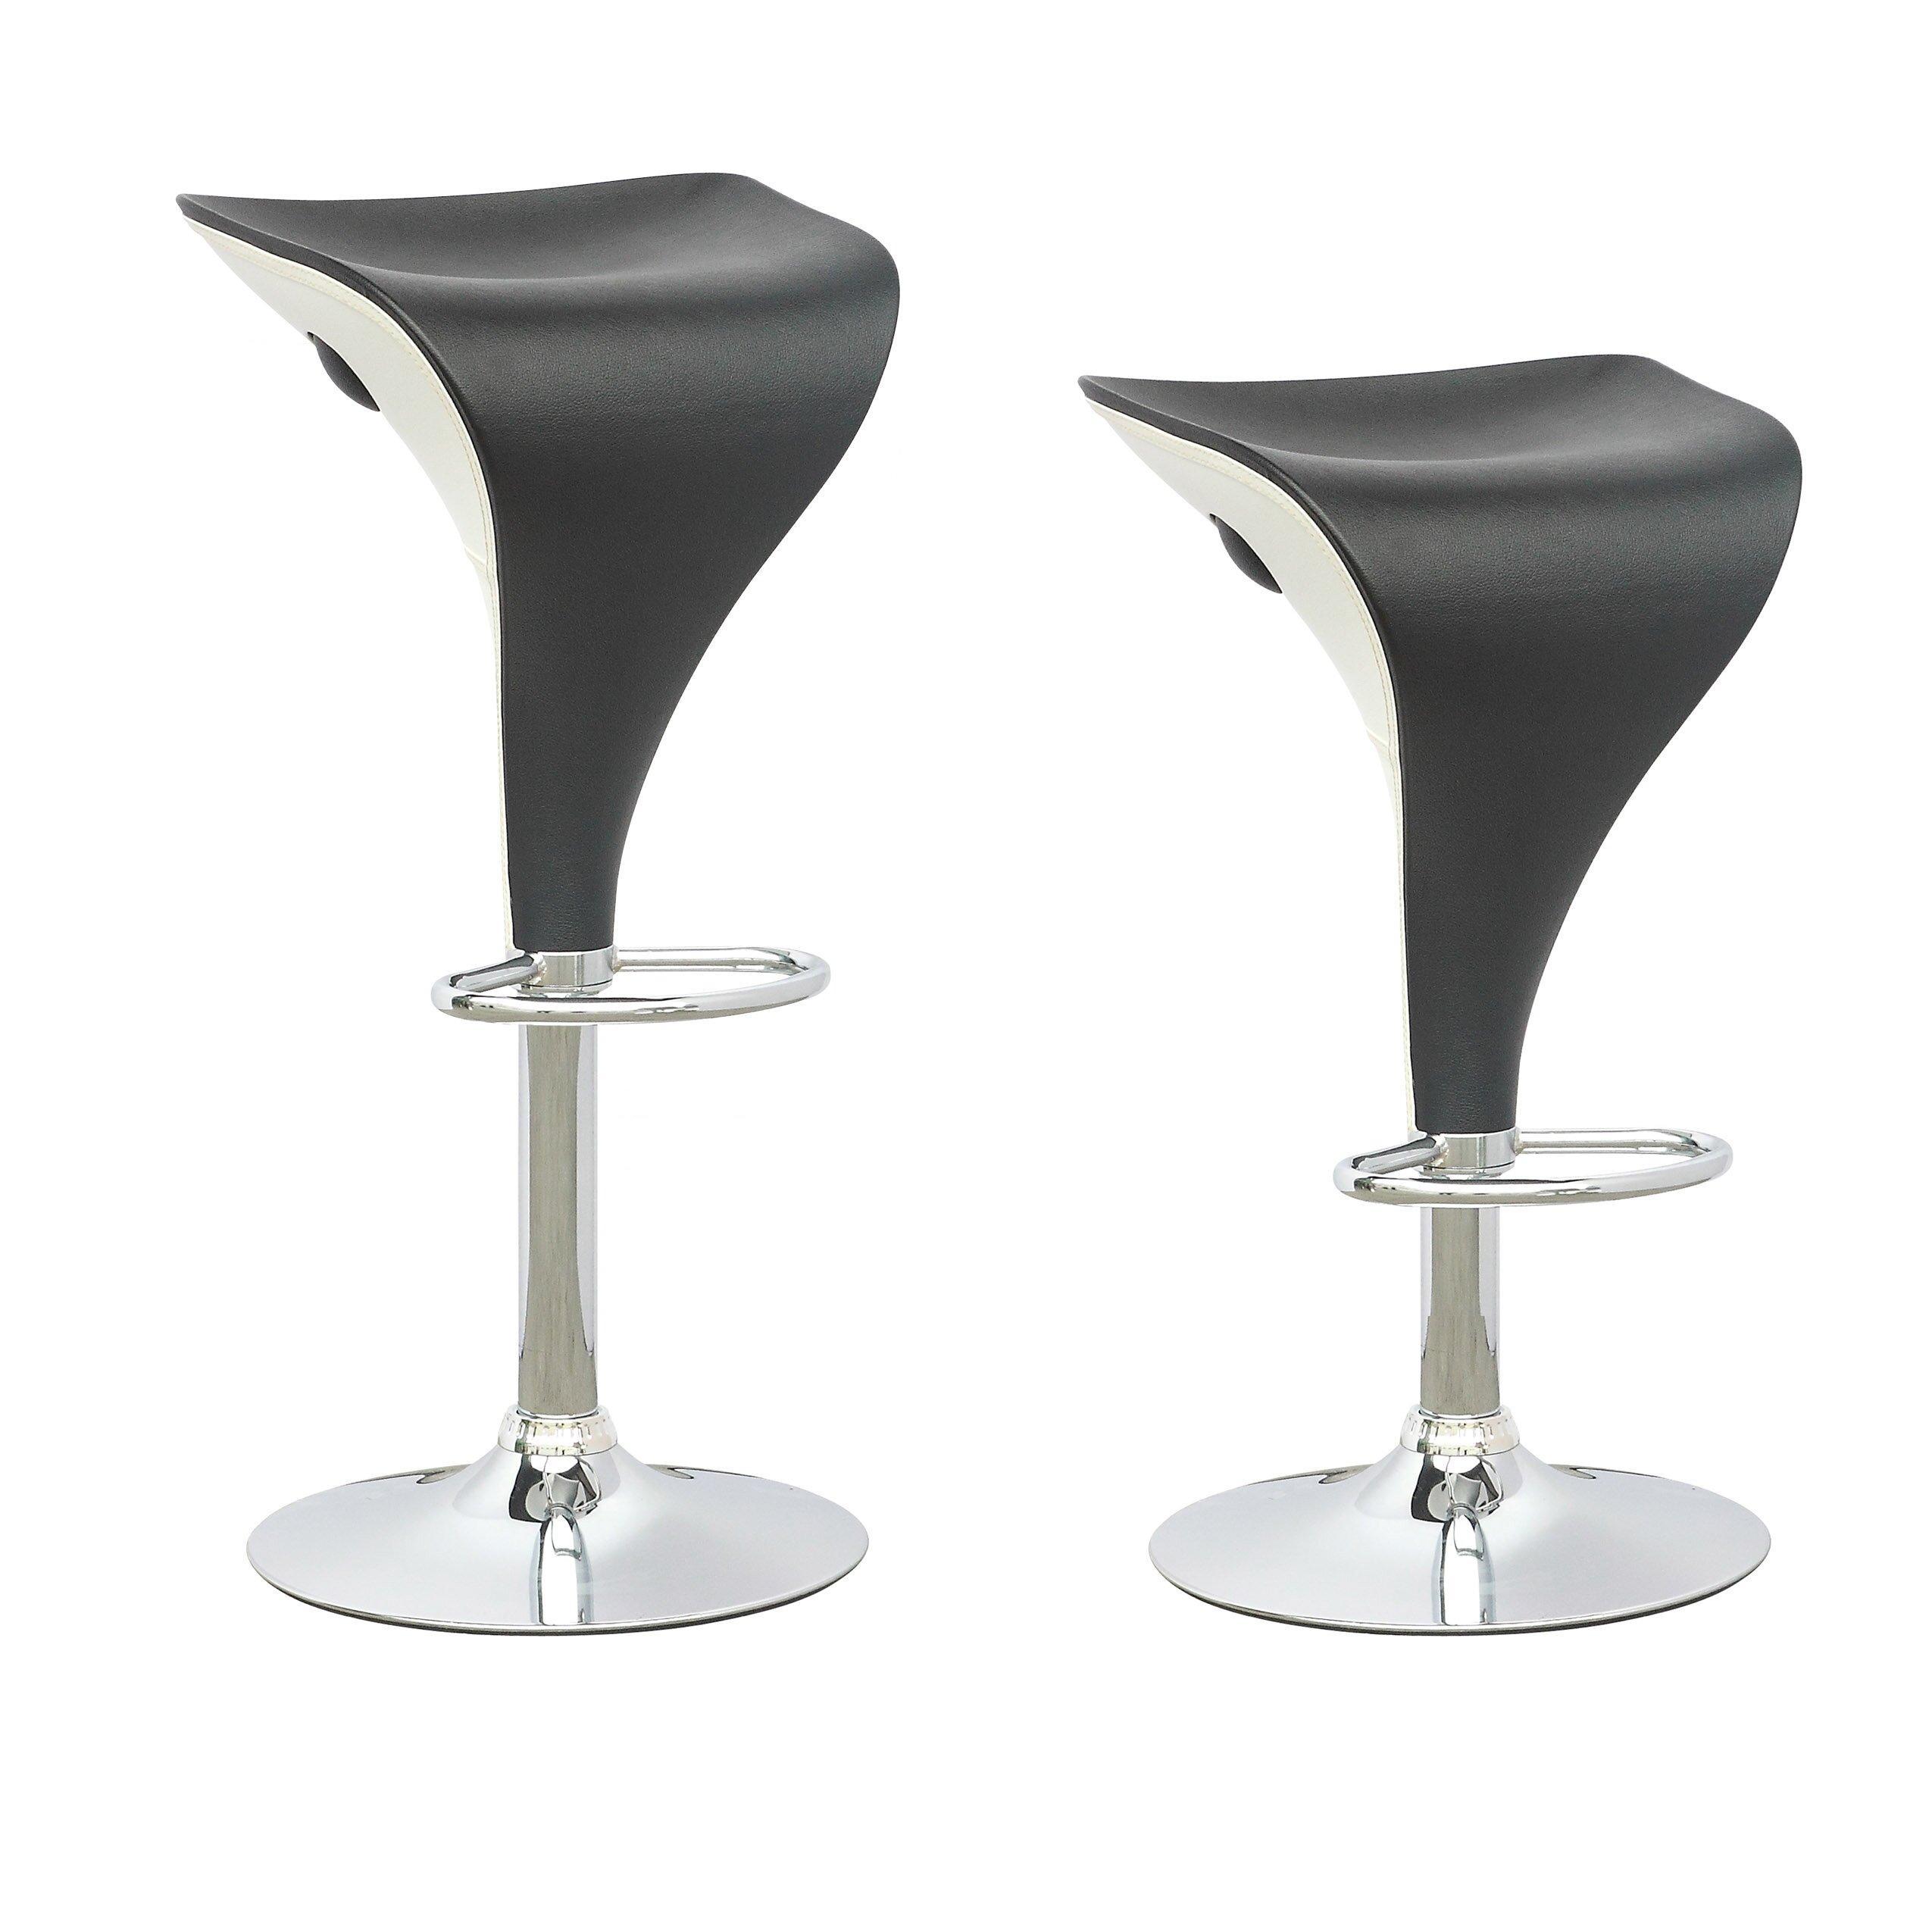 CorLiving Adjustable Height Swivel Bar Stool amp Reviews  : CorLiving Adjustable Height Swivel Bar Stool from www.wayfair.com size 2550 x 2550 jpeg 300kB